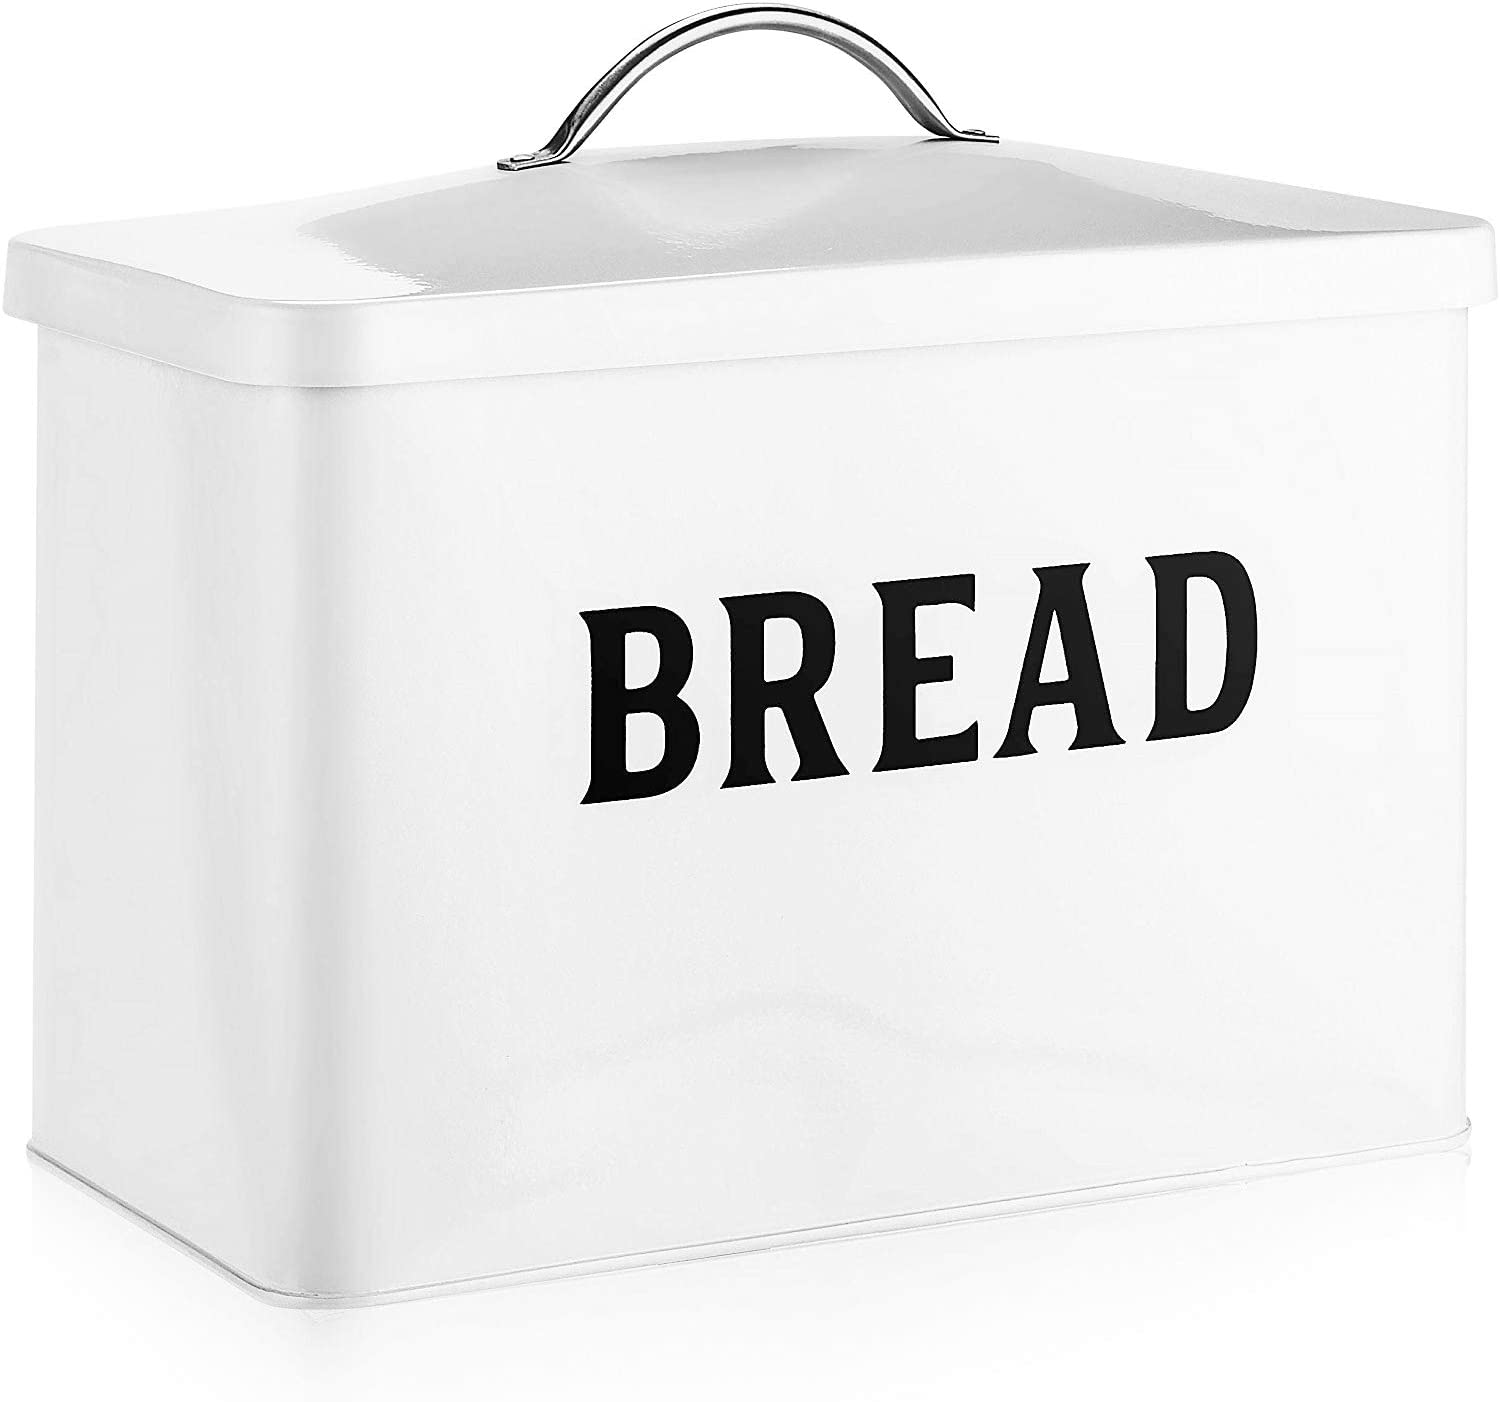 Metal Bread Box - Modern Farmhouse Style Bread Tin - White with Black Letters Storage Holder - Holds 2+ Loaves Extra Large Vintage Bread Container